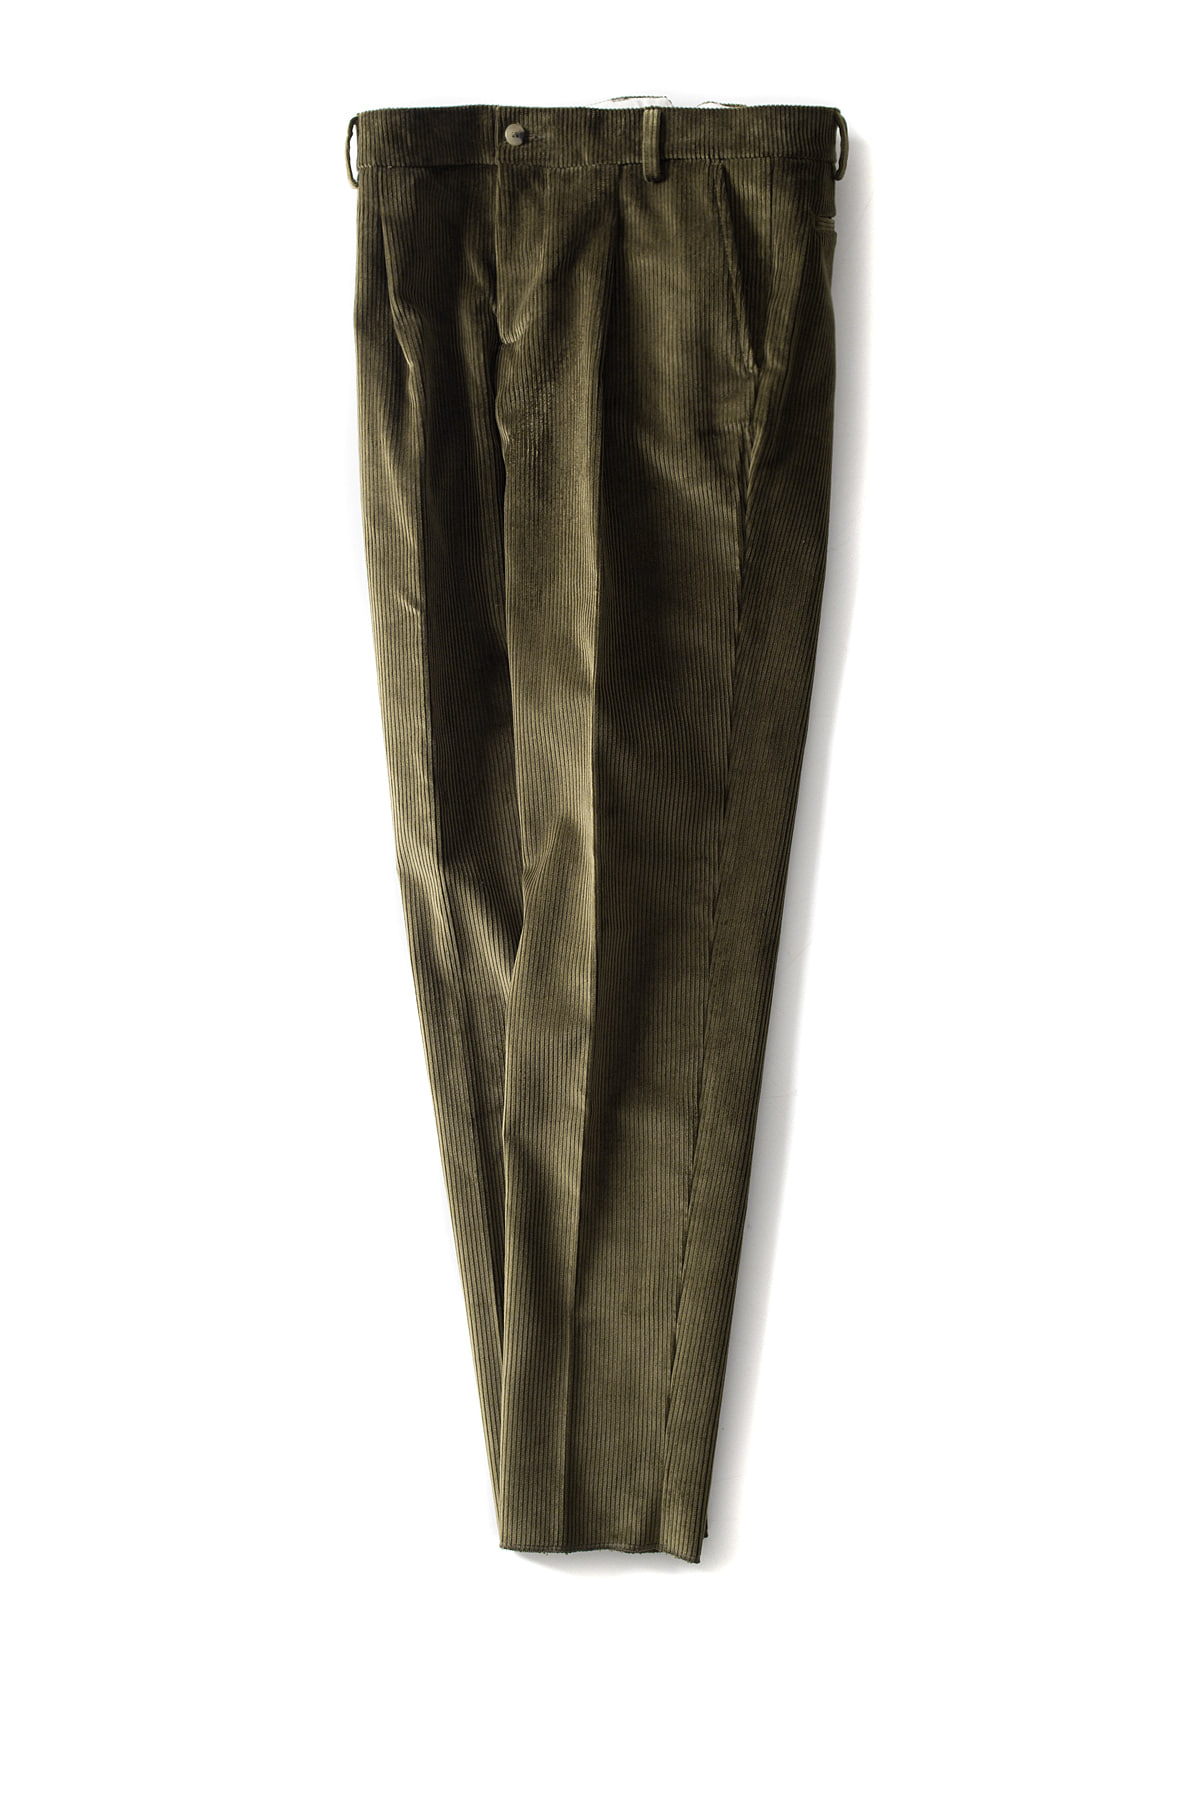 de bonne facture : One Pleat Trousers (Olive)